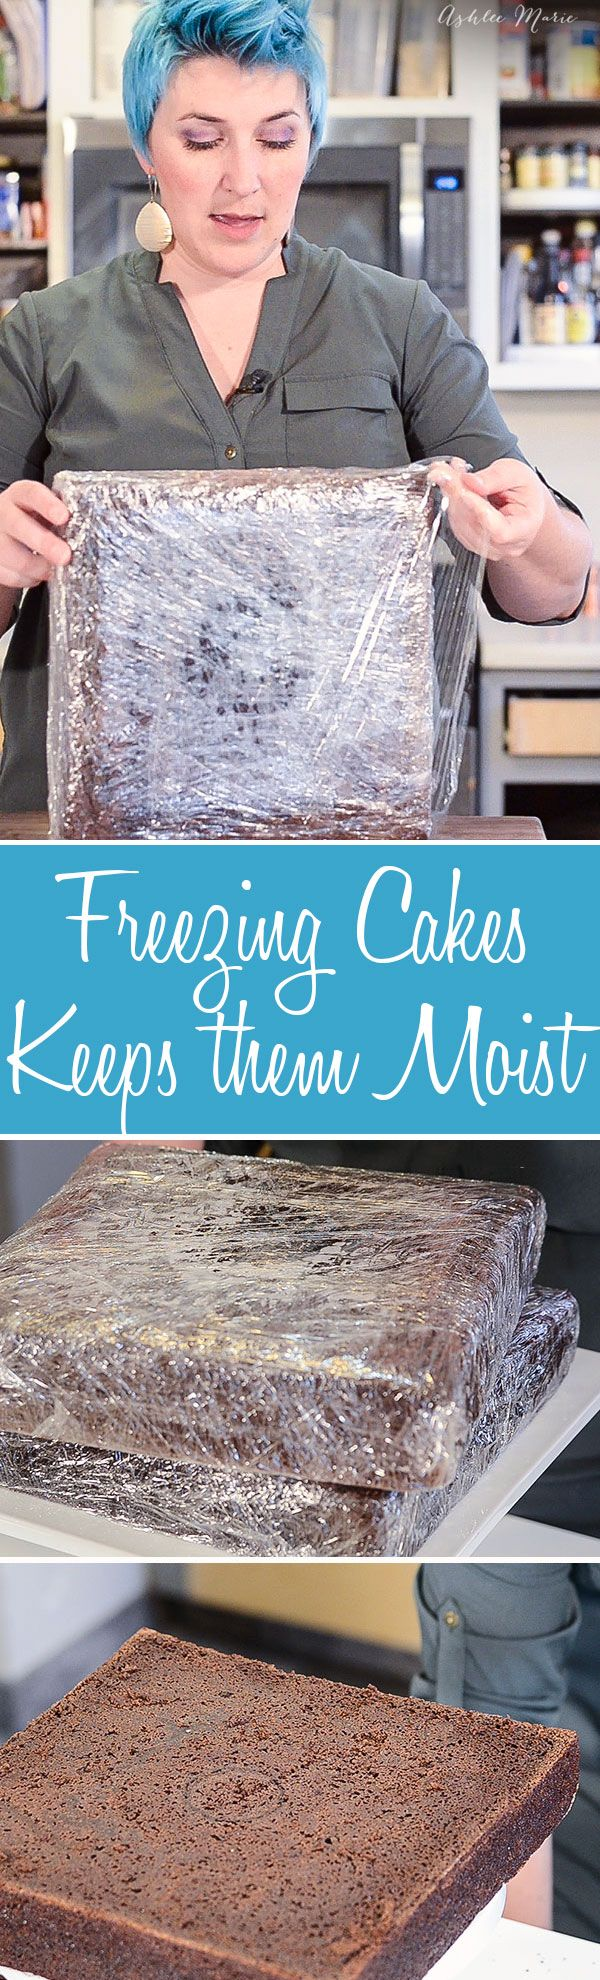 A kitchen tip from a baker – why freezing cakes will actually keep them more moist than if you let them cool on the counter top – a video